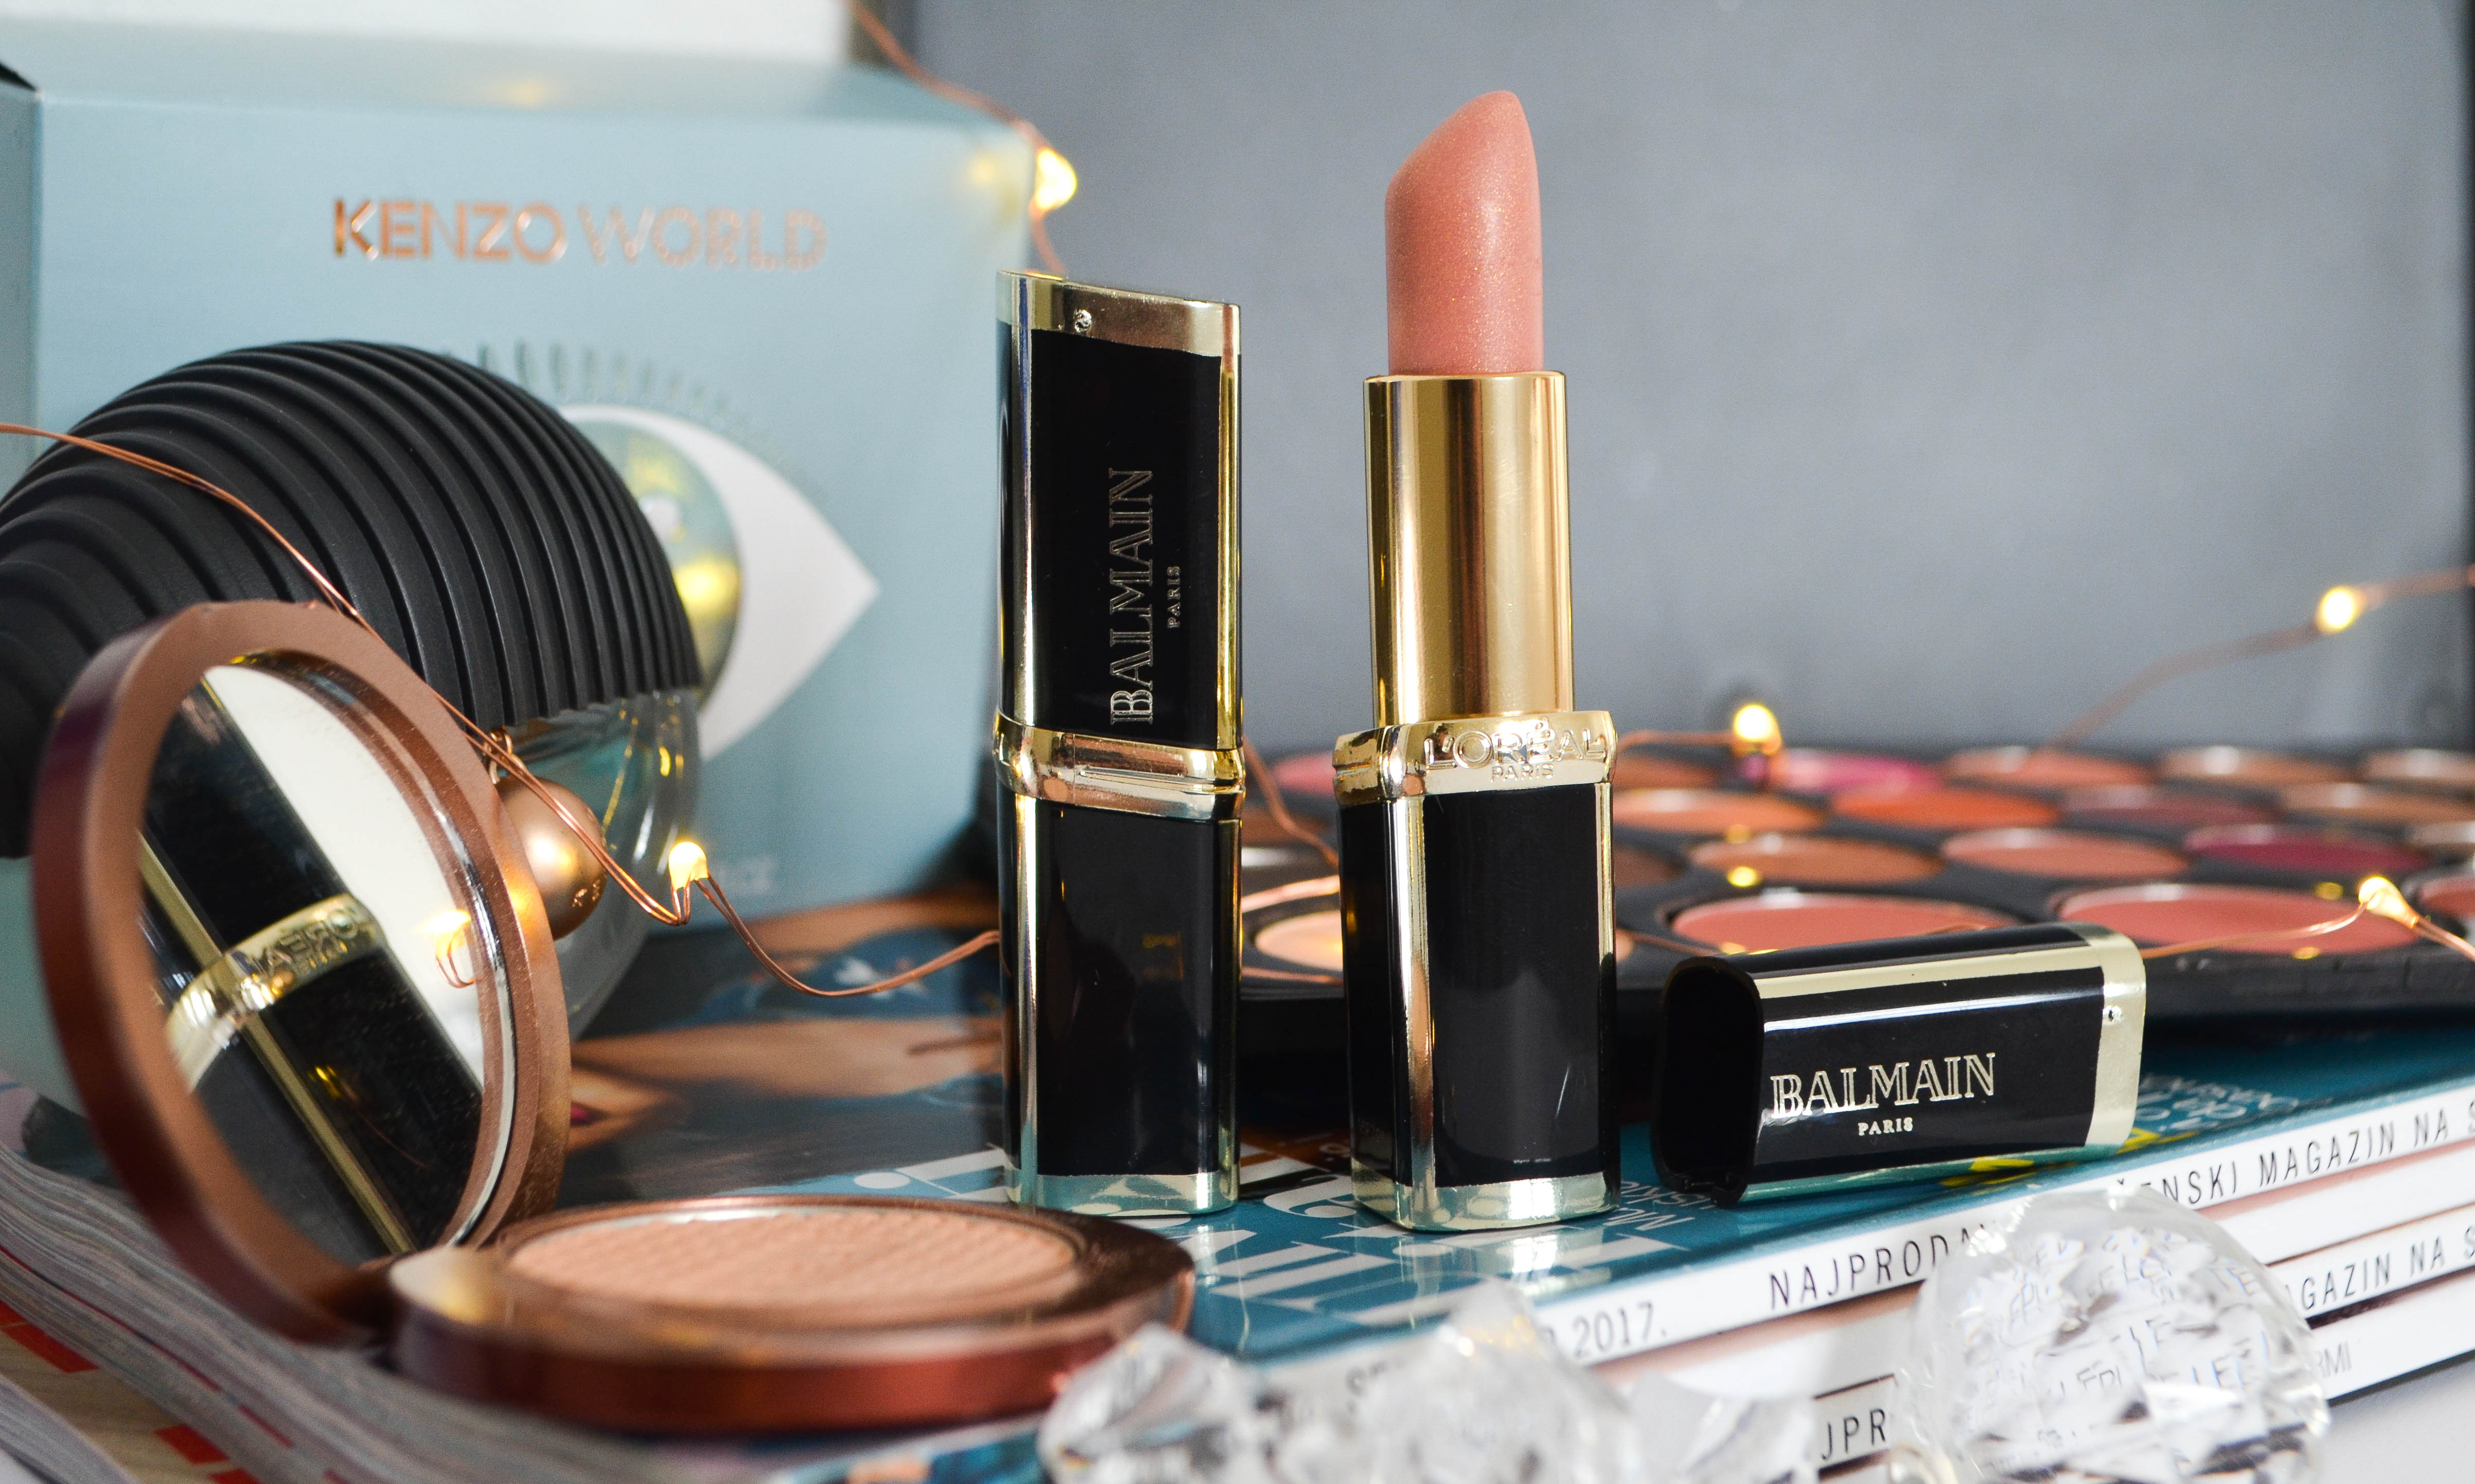 Beauty Bang Theory - Novembarski favoriti 2017 L'oreal x Balmain